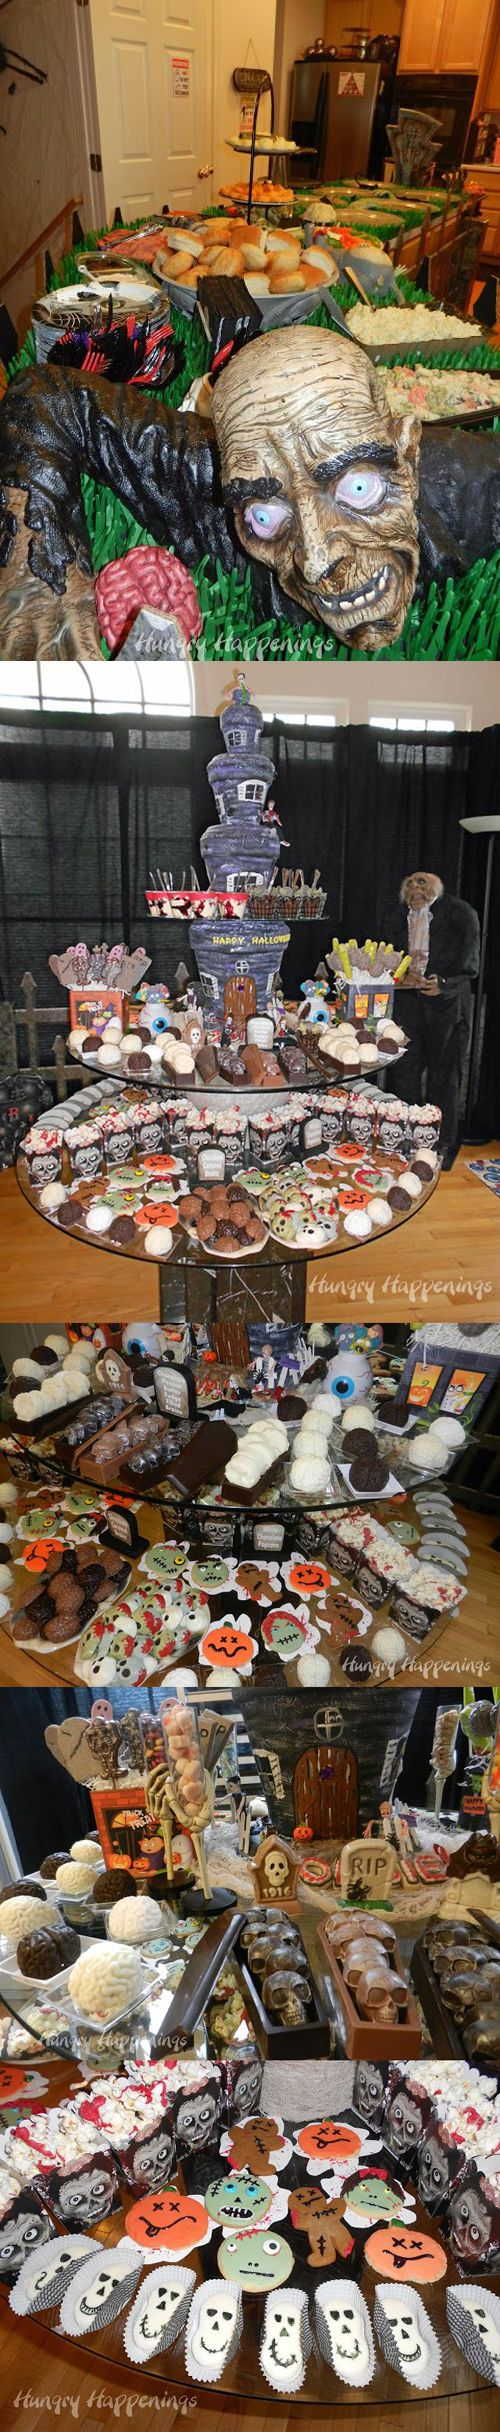 Every Zombie Halloween party should have a dessert table spread like this. AMAZING! The ZomBeatles -- A Hard Day's Night of the Walking Dead! Halloween Party Decorations & Ideas